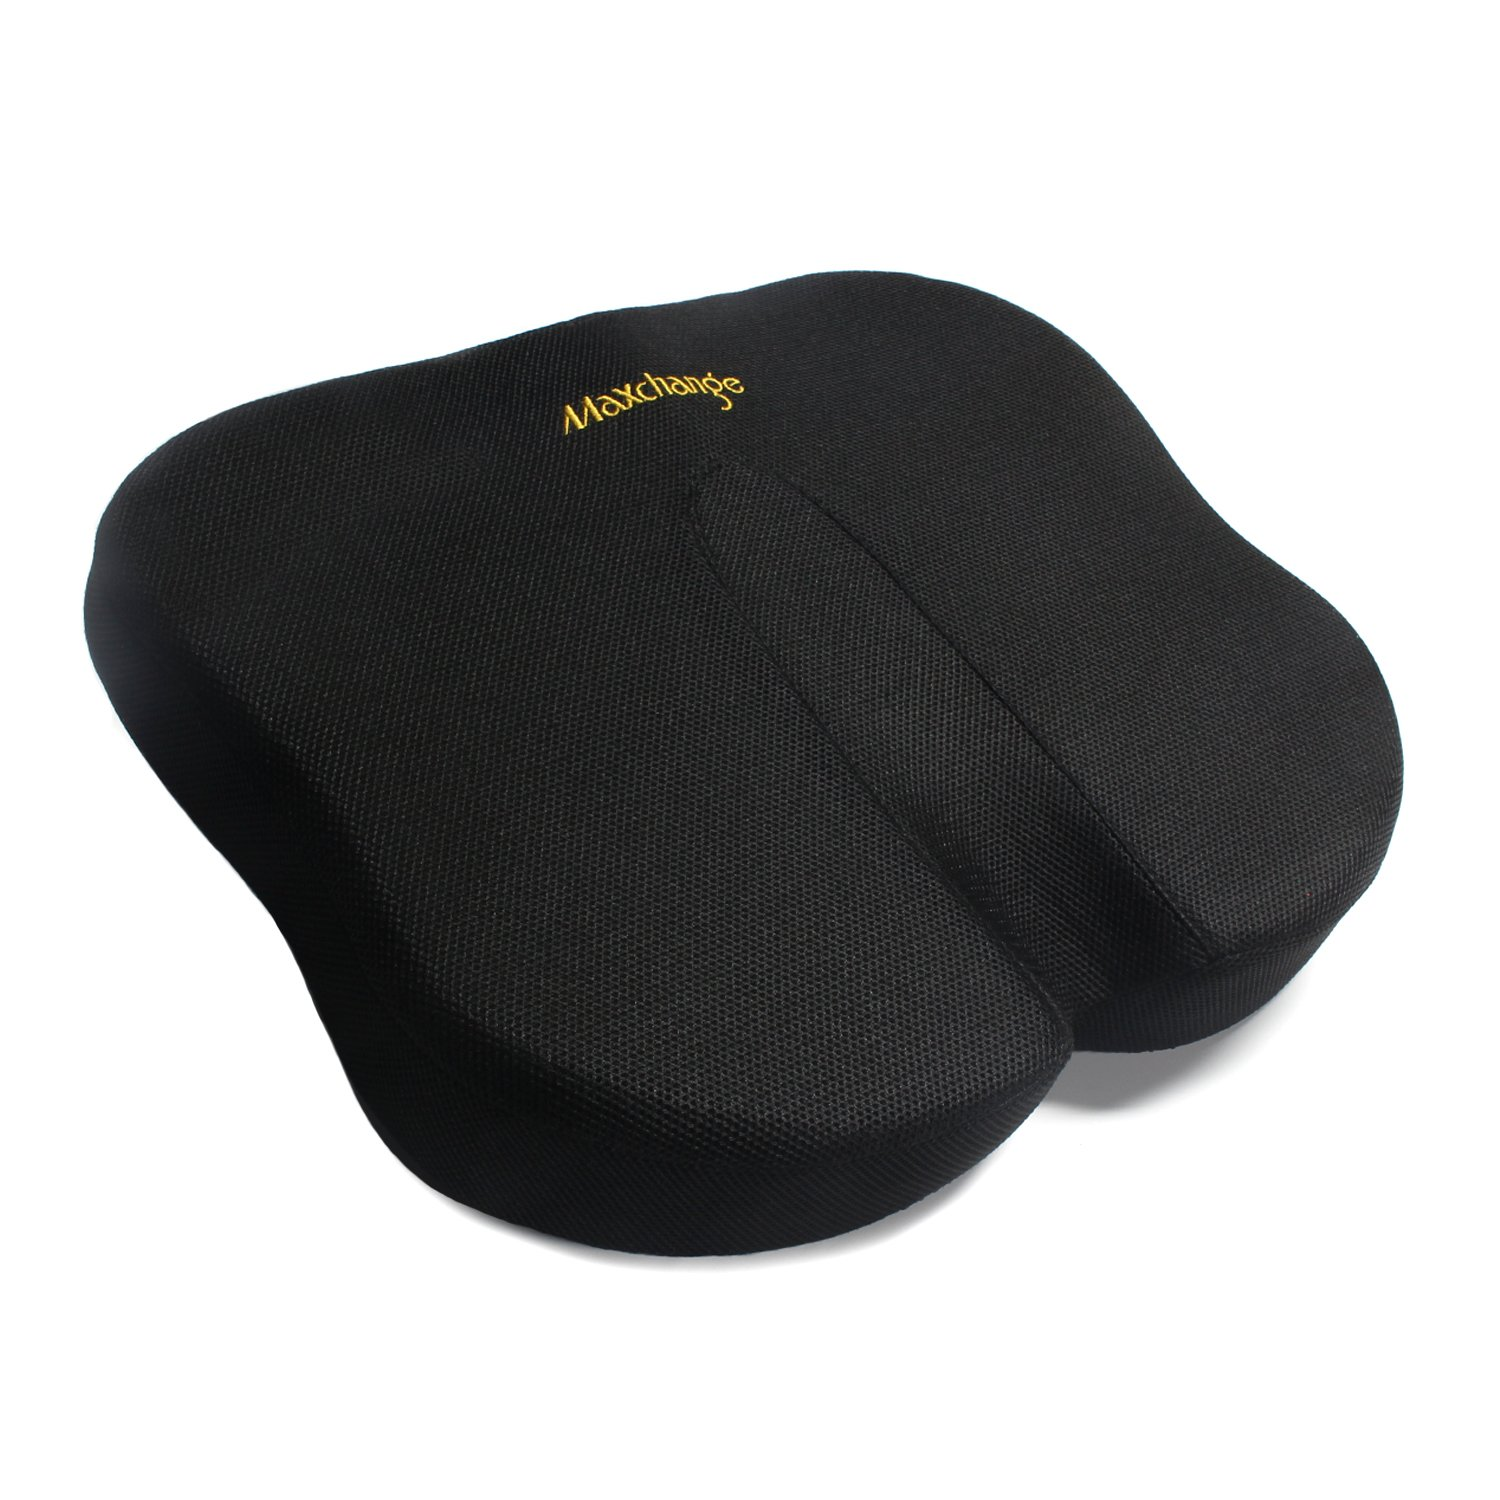 [Upgraded] Office Chair Seat Cushion, Maxchange 100% Pure Memory Foam Butterfly Shape Pad to Relieve Back, Sciatica and Tailbone Pain(Car/Wheelchair/Kitchen Chair Available)